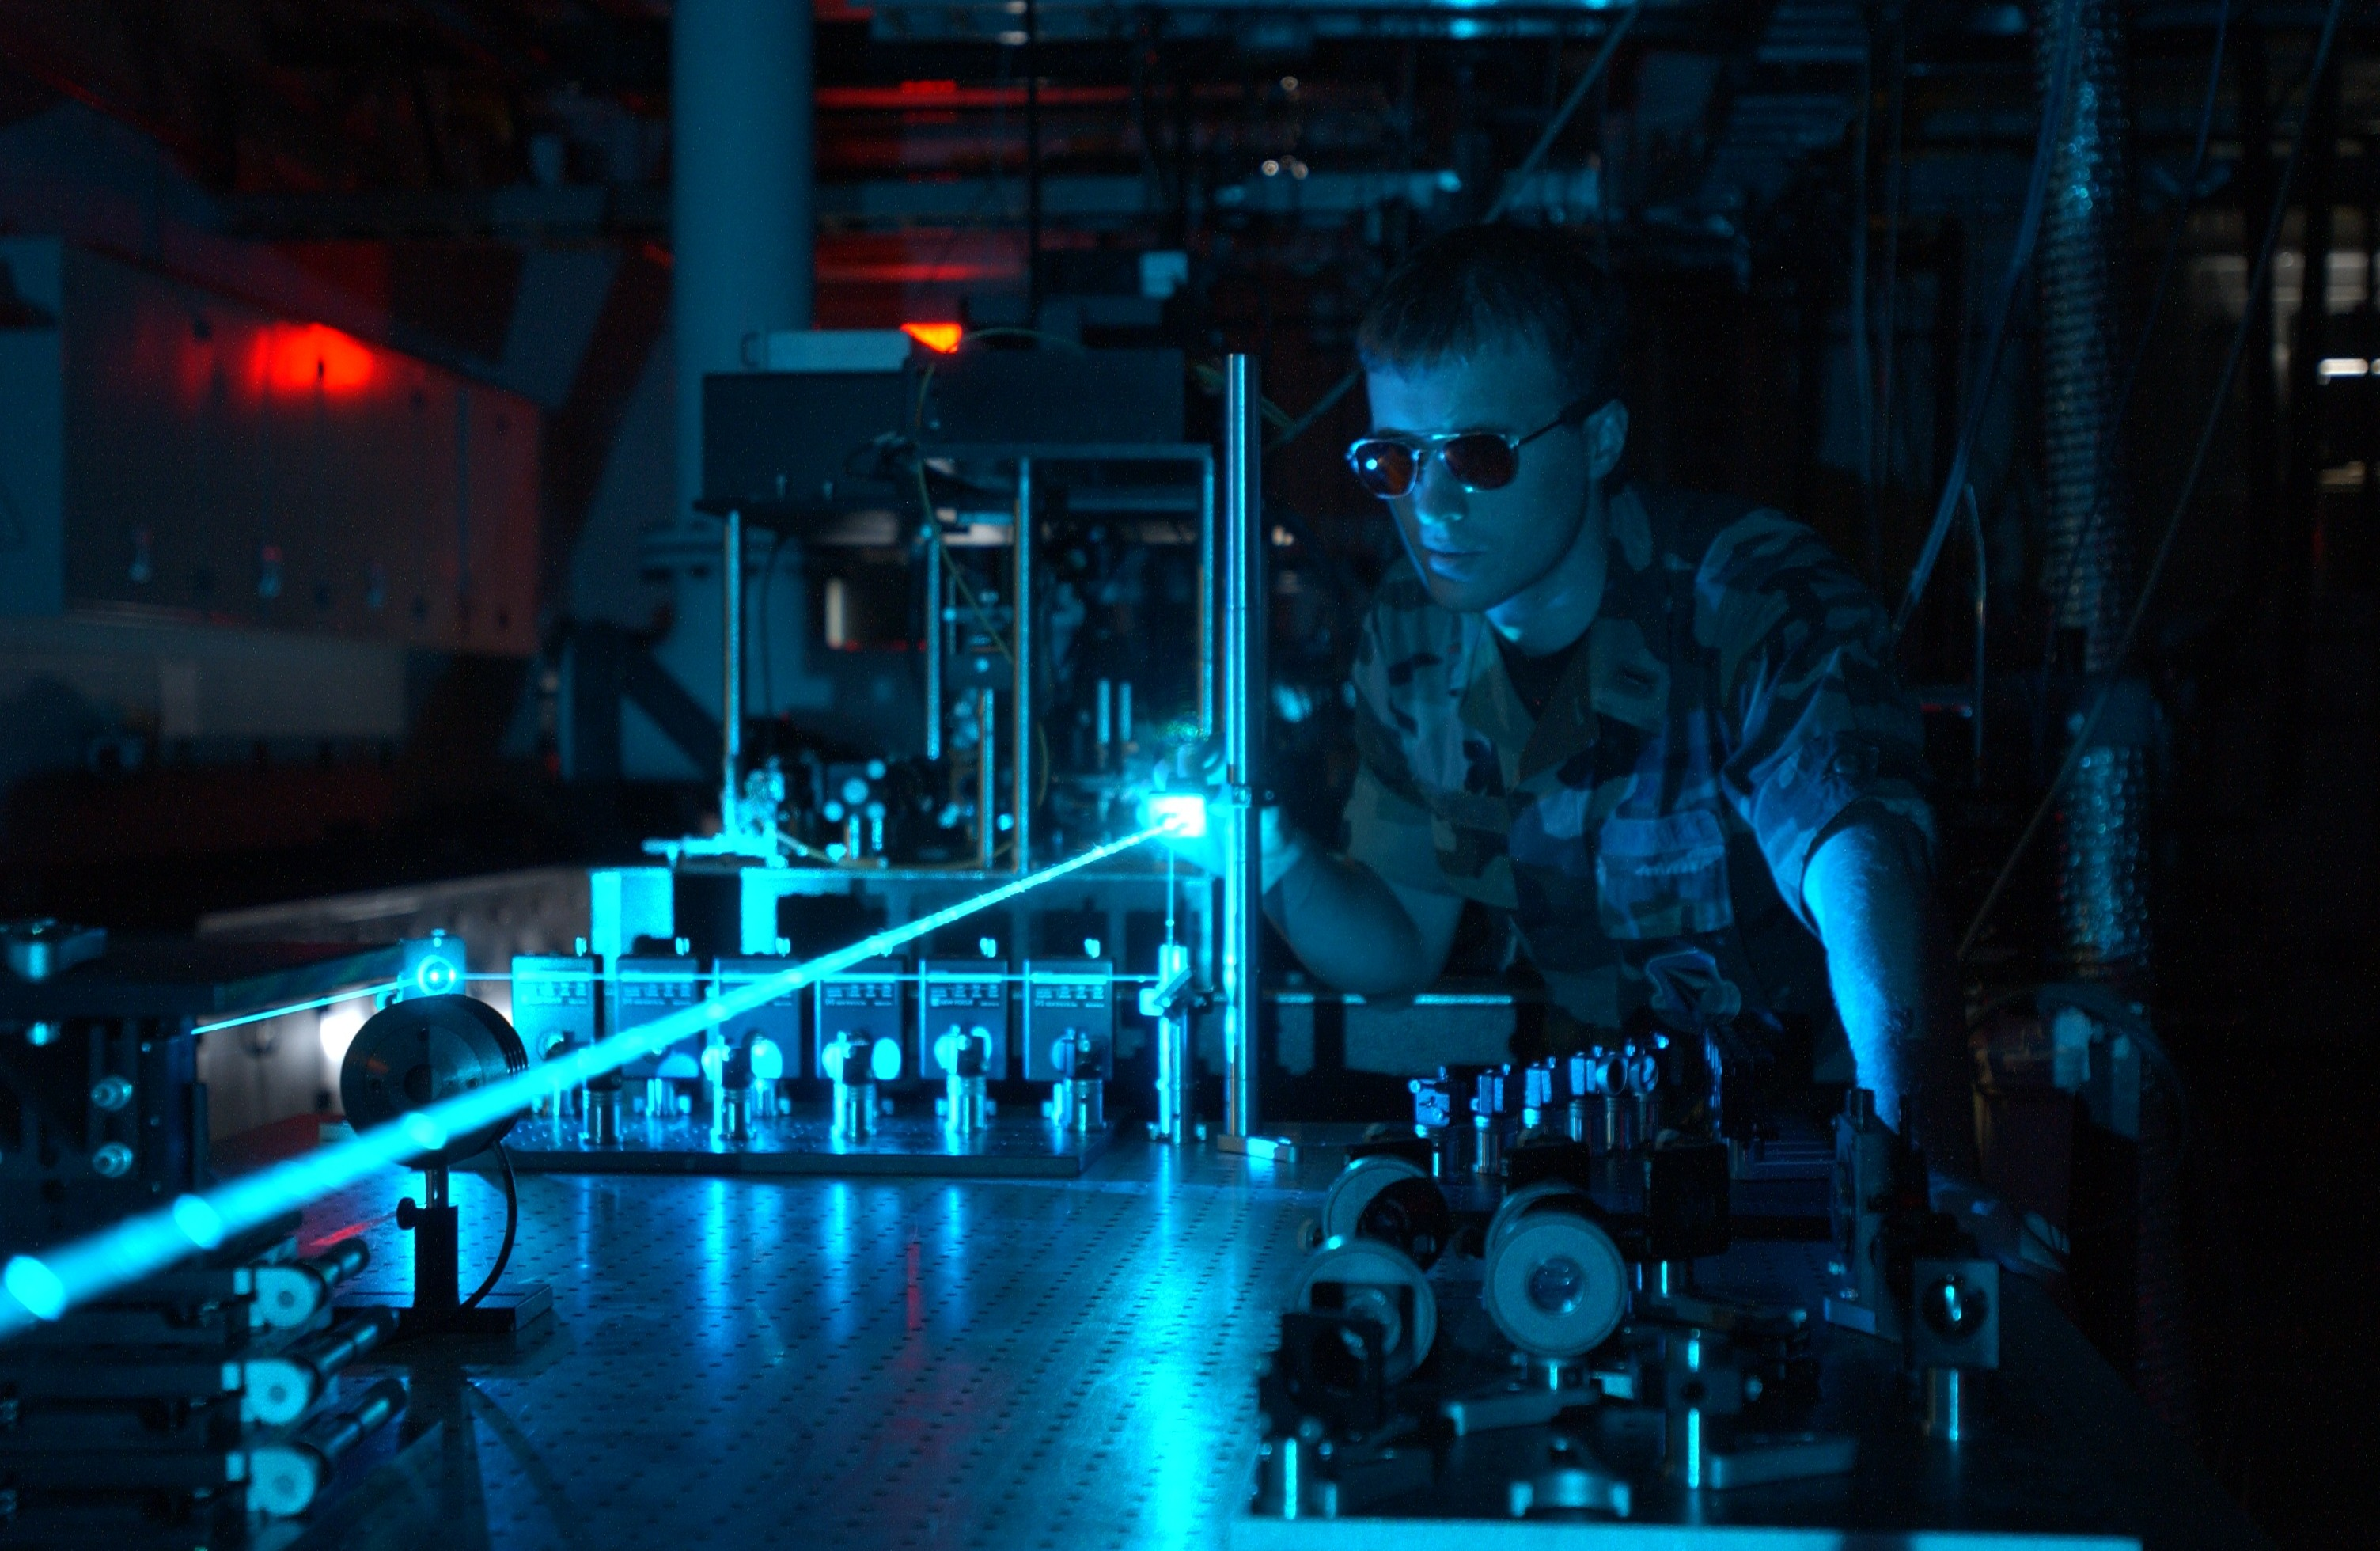 Military_laser_experiment